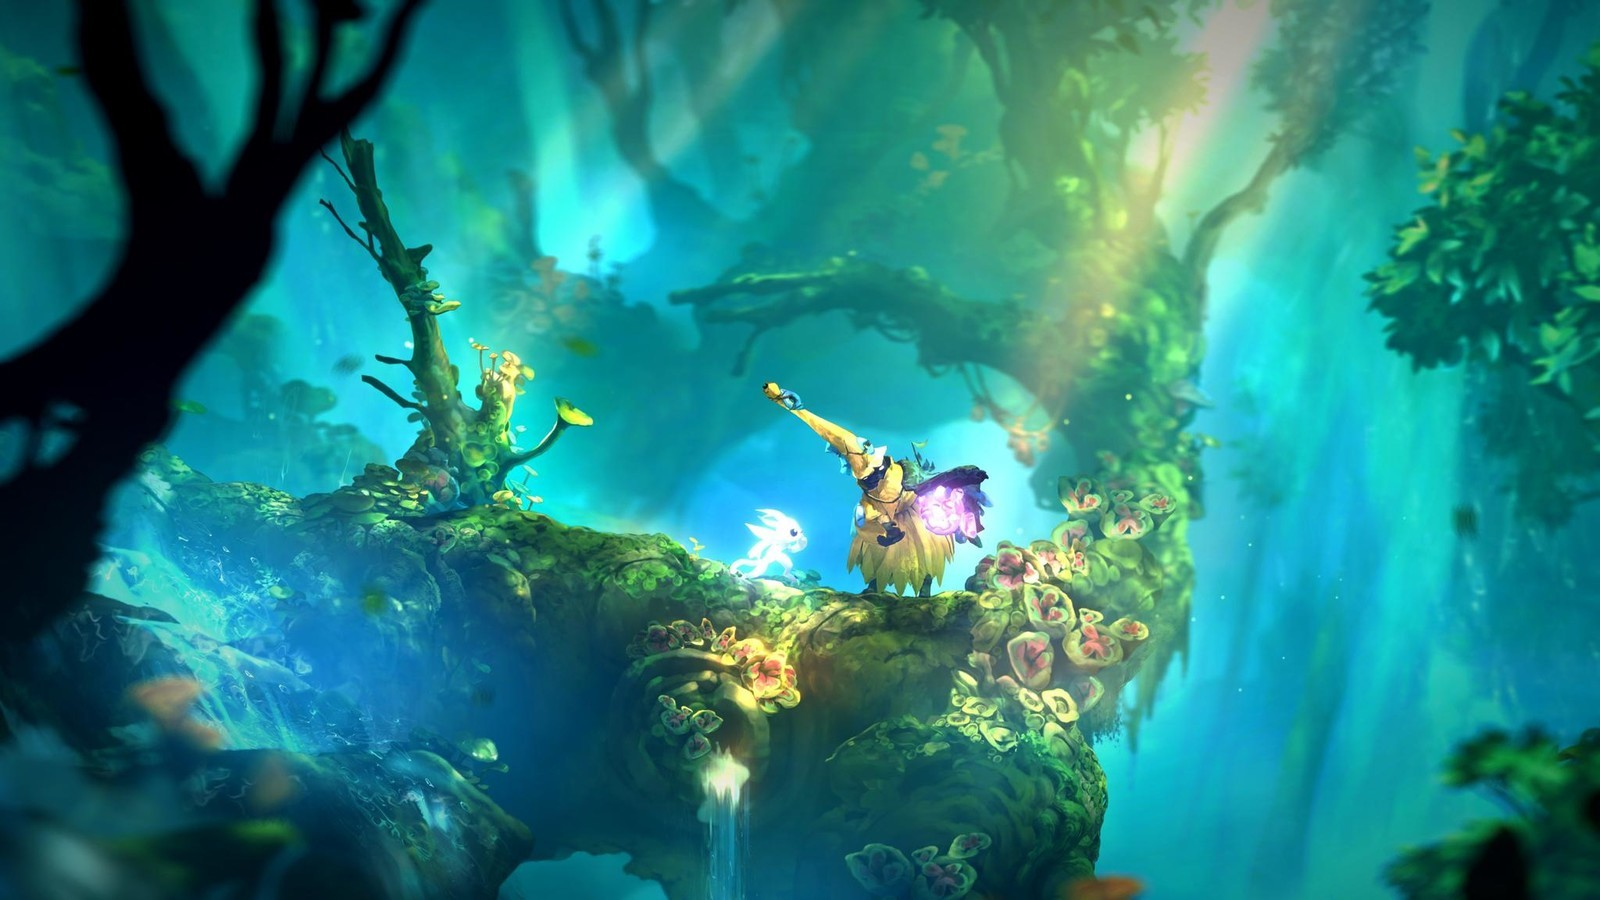 ori and the will of the wisps video game wallpaper 67651